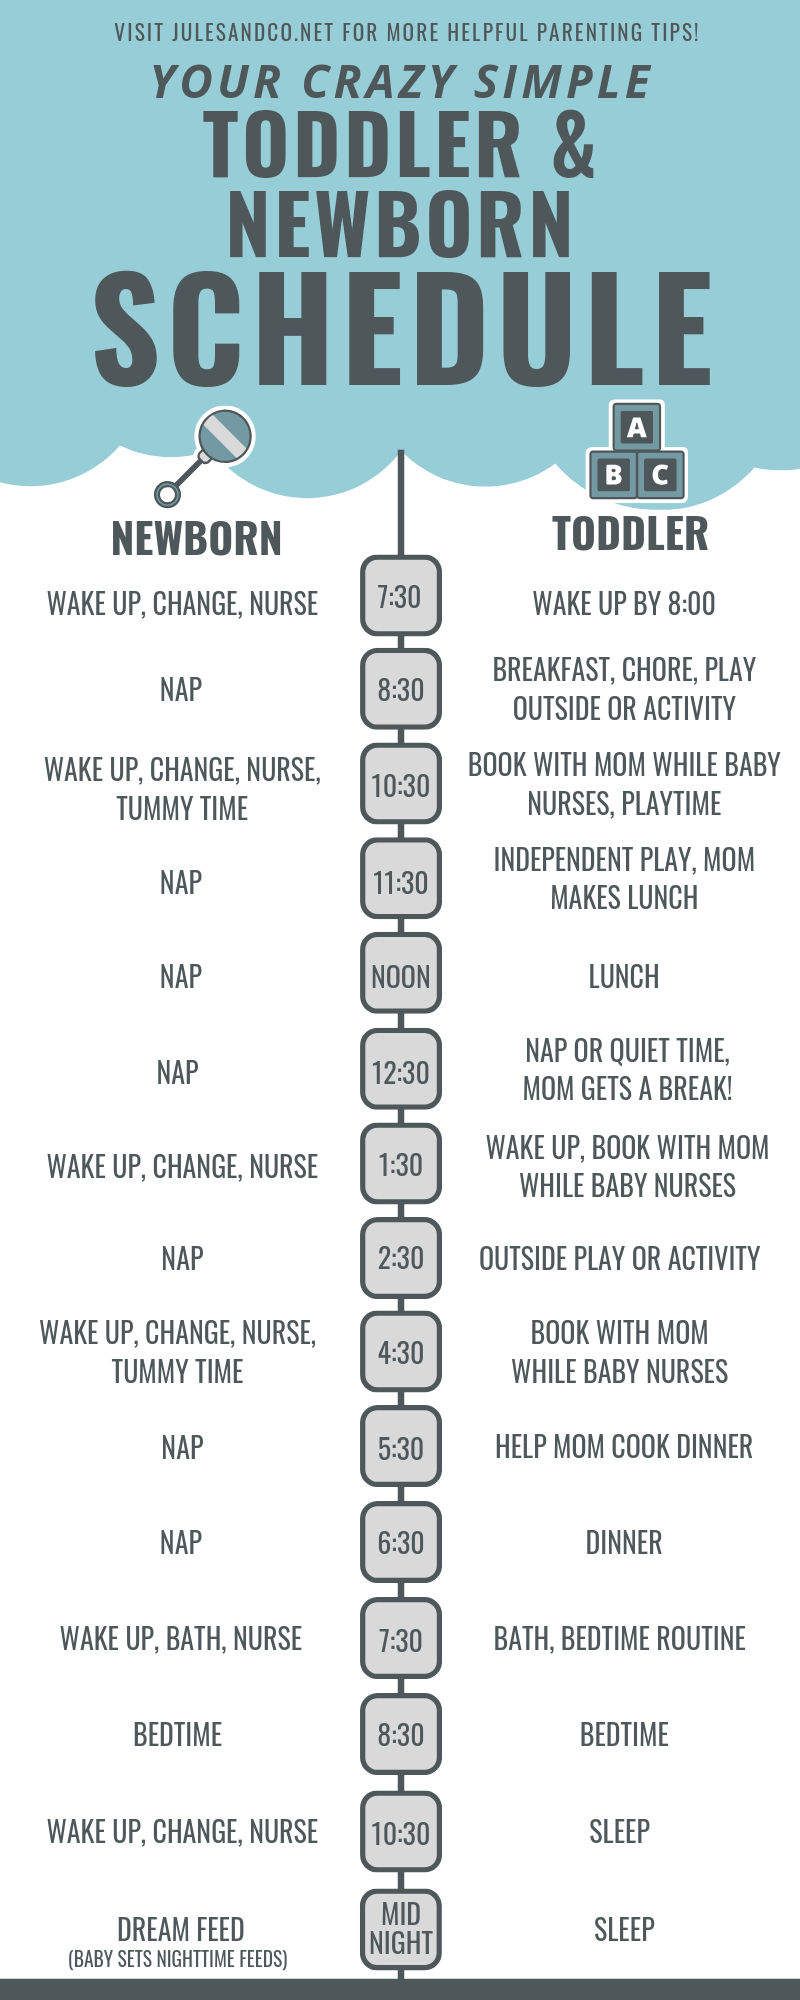 A Foolproof Newborn Schedule (That Works for Your Toddler, Too!) Have a newborn and a toddler at home? Life can get real crazy, real fast. Make a combined toddler and newborn schedule and claim back your sanity! #famousspeeches